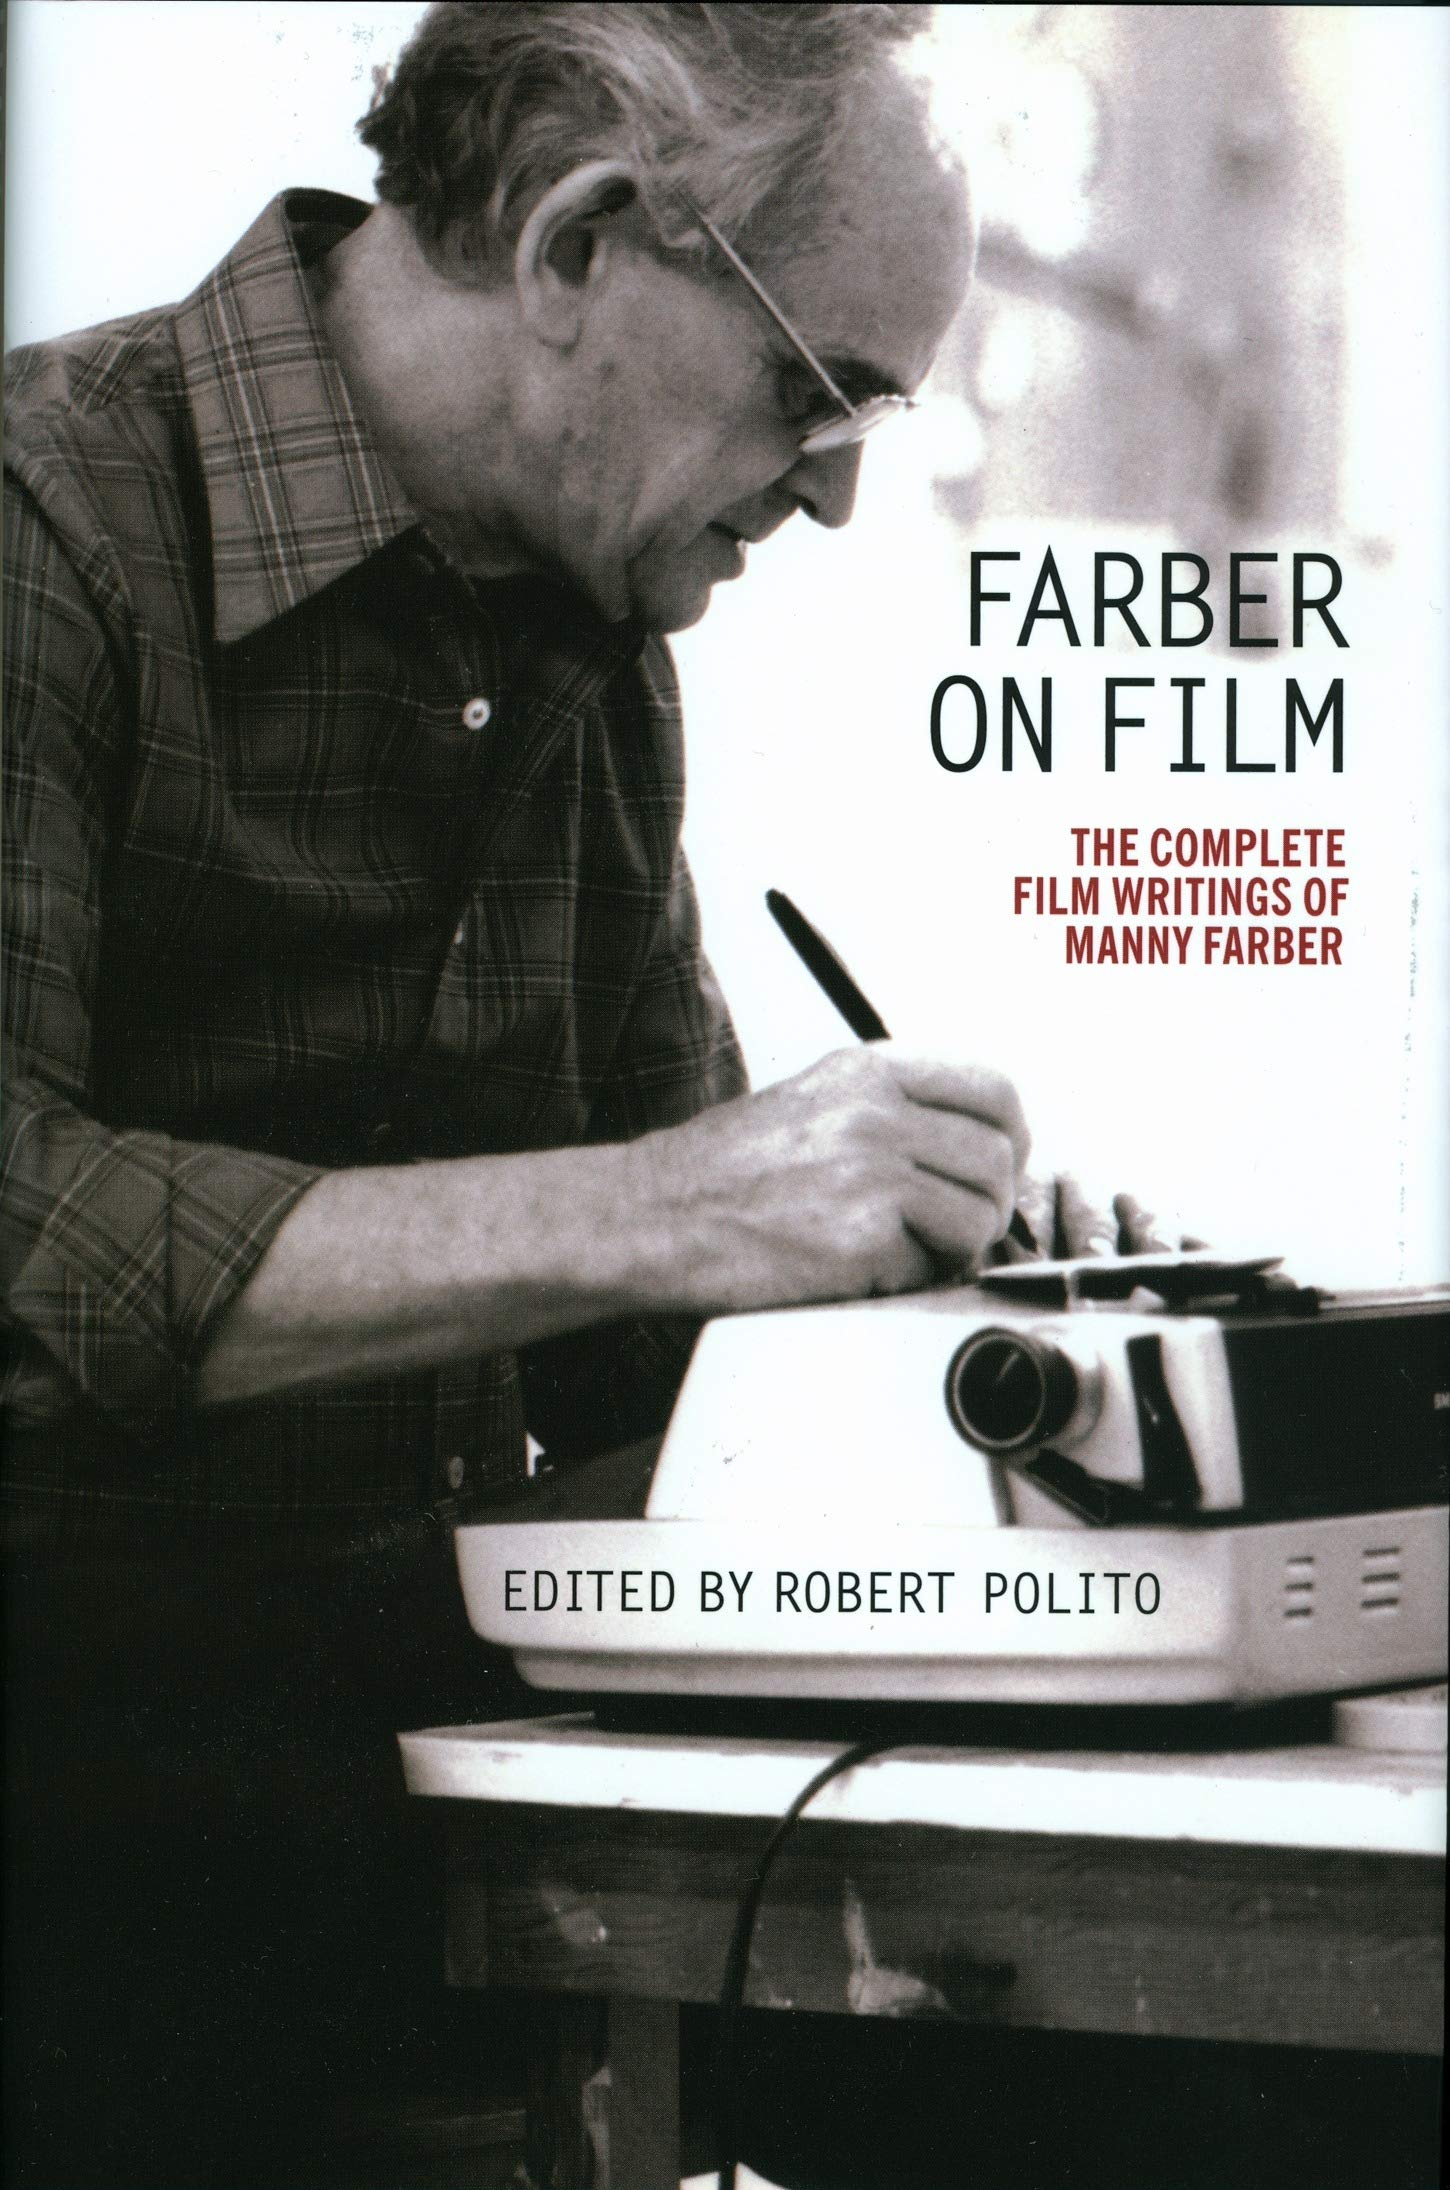 Farber On Film The Complete Film Writings Of Manny Farber A Library Of America Special Publication Farber Manny Polito Robert 9781598534696 Amazon Com Books